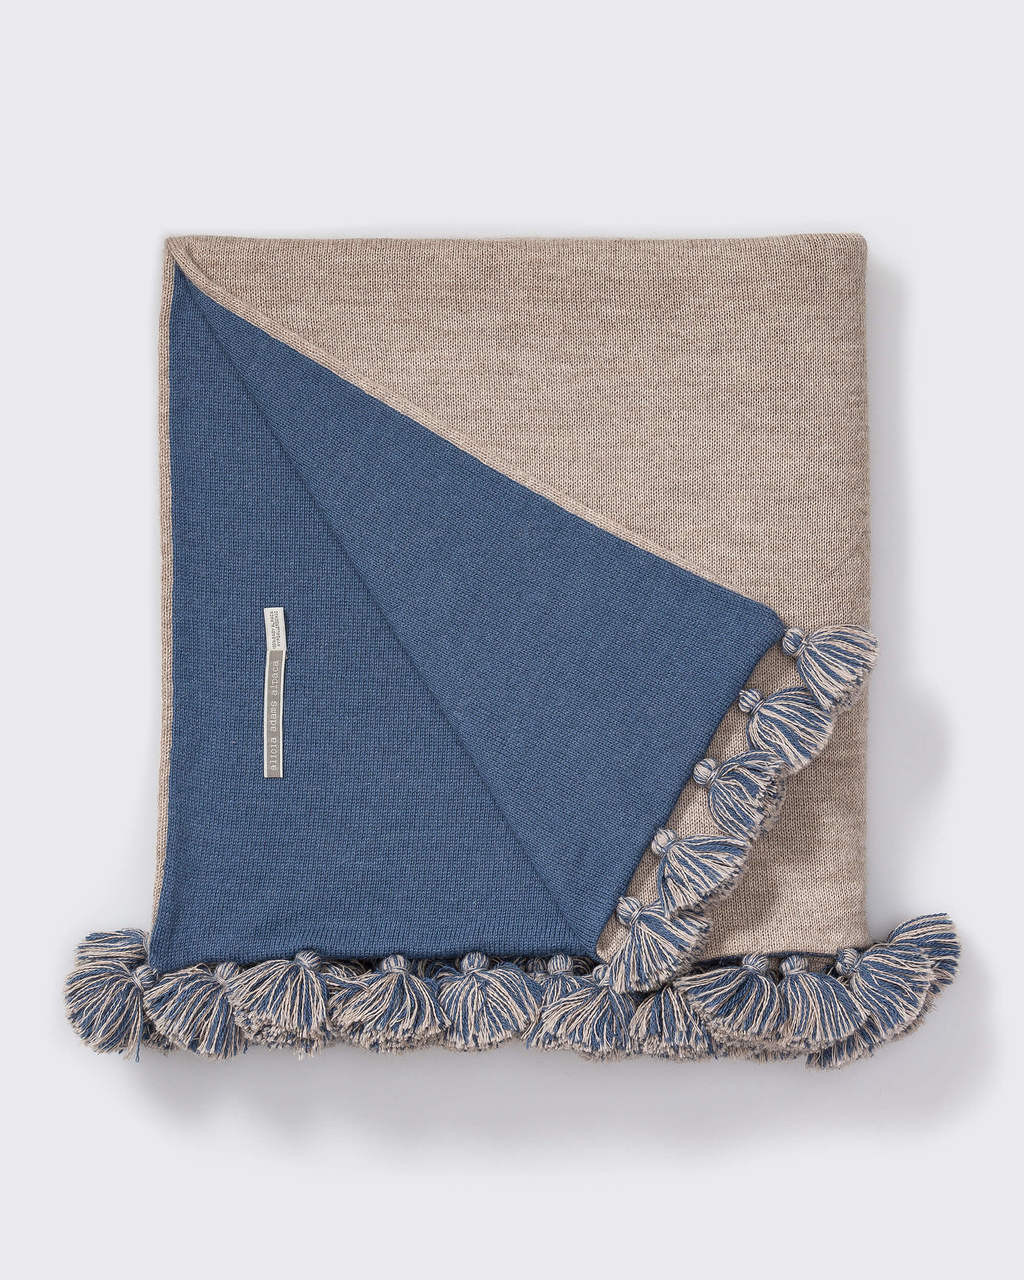 Alicia Adams Alpaca Reversible Pompom Blanket, pompom alpaca king bed blanket, alpaca throw blanket, 100 alpaca blanket, light taupe and english manor blue alpaca blanket